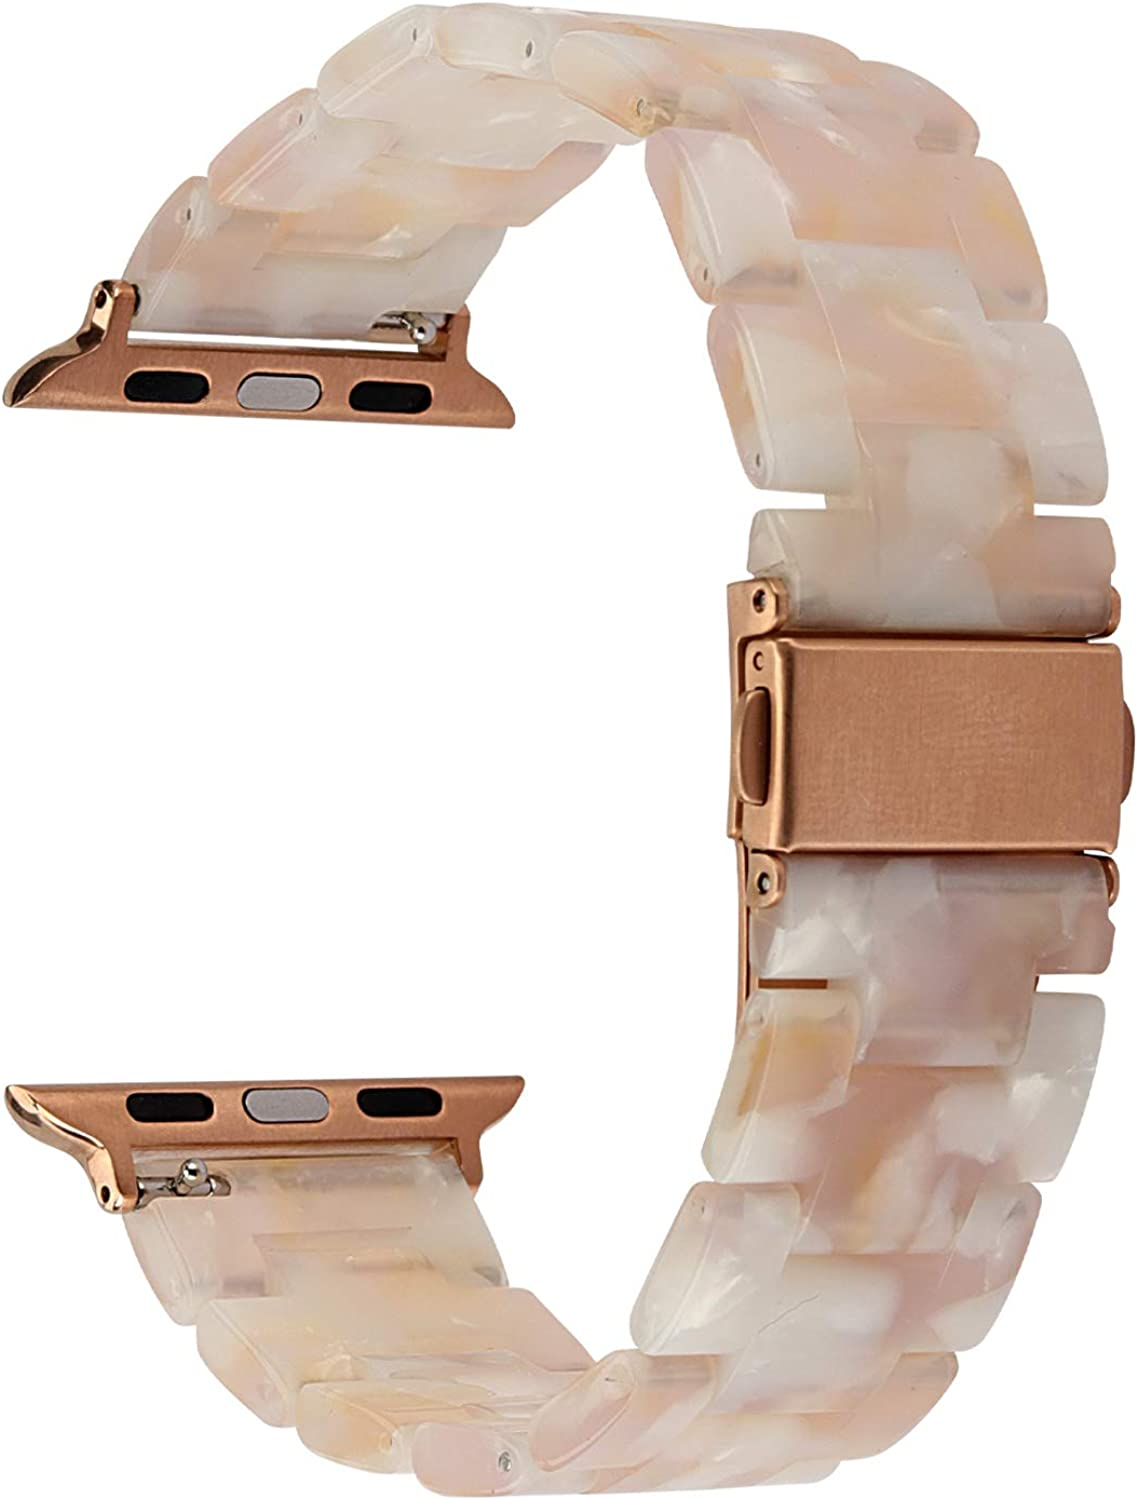 MAIRUI Compatible with Apple Watch Band Series 4/5 Slim Resin Bracelet Wristband Lightweight Strap Replacement for iWatch Series 5/4/3/2/1, Sport/Edition